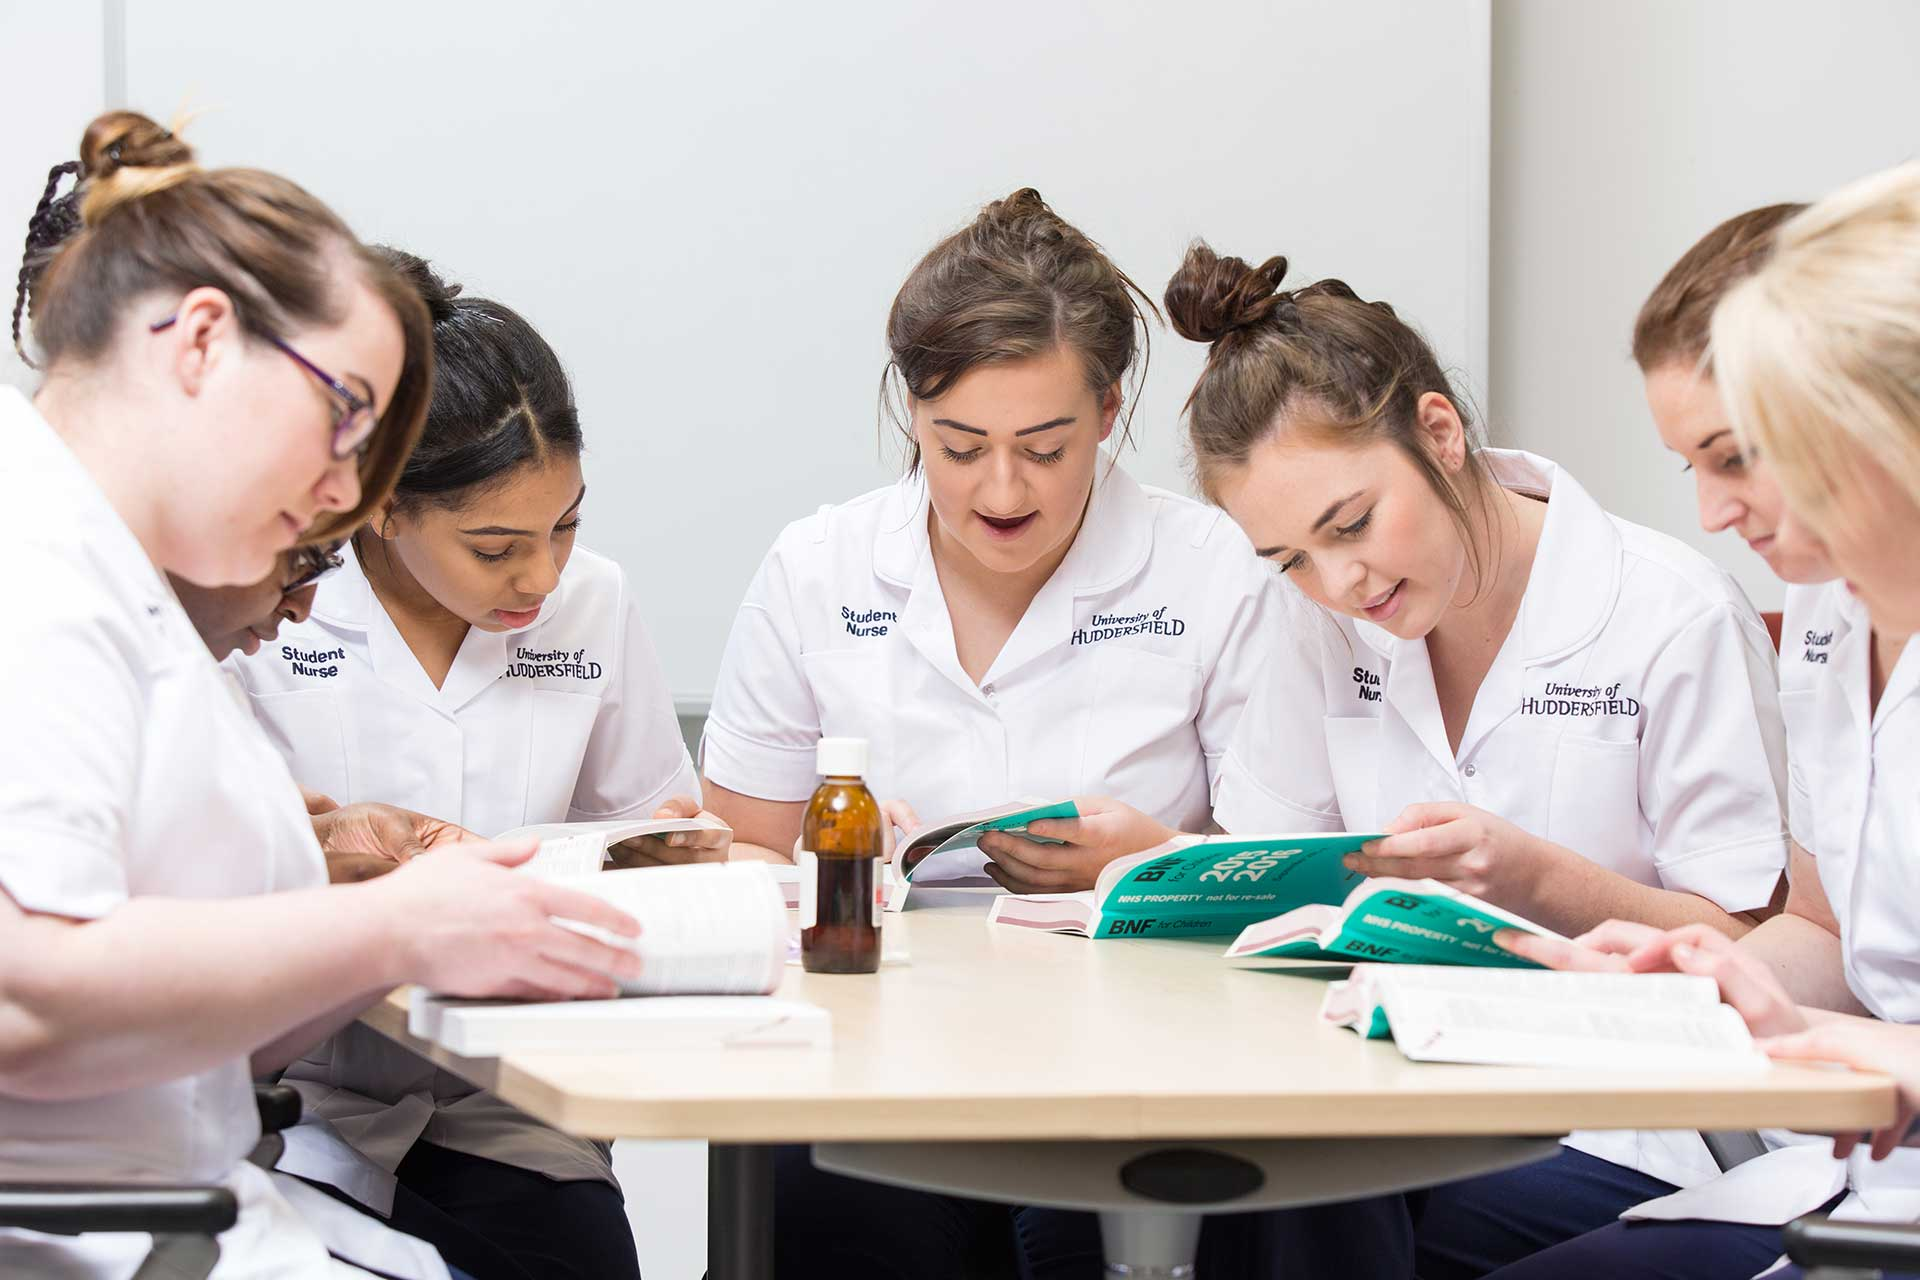 learning and nurses 0nline medical spanish courses for doctors, nurse practioners, nurses, ems and other health care workers nursing ce for selected courses.